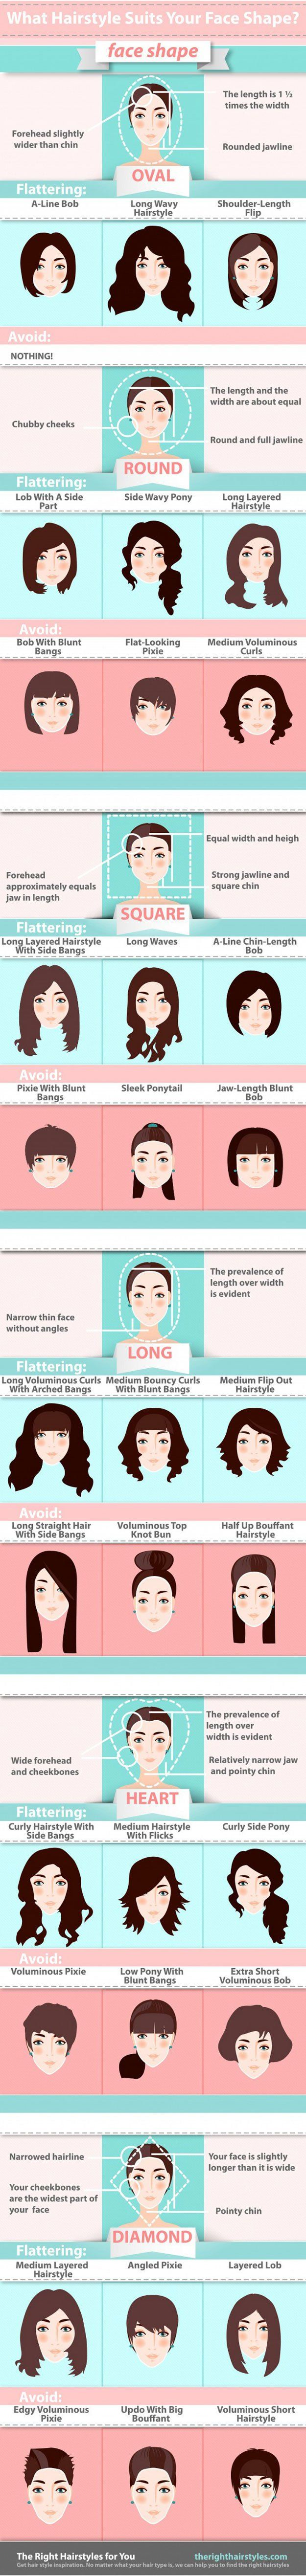 Beauty Basics Best Hairstyles For Your Face Shape